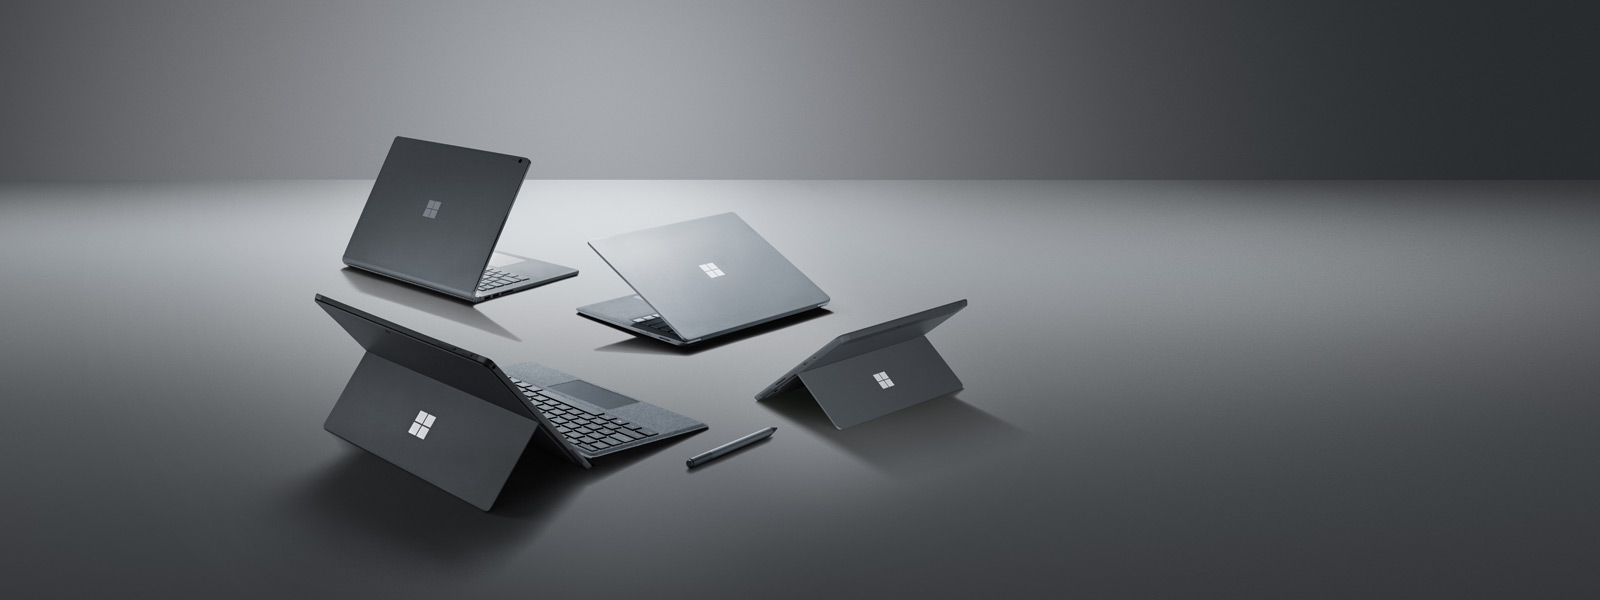 Surface Go、Surface Book 2、Surface Pro 6(亮铂金)和 Surface Laptop 2(亮铂金)、Surface Pen